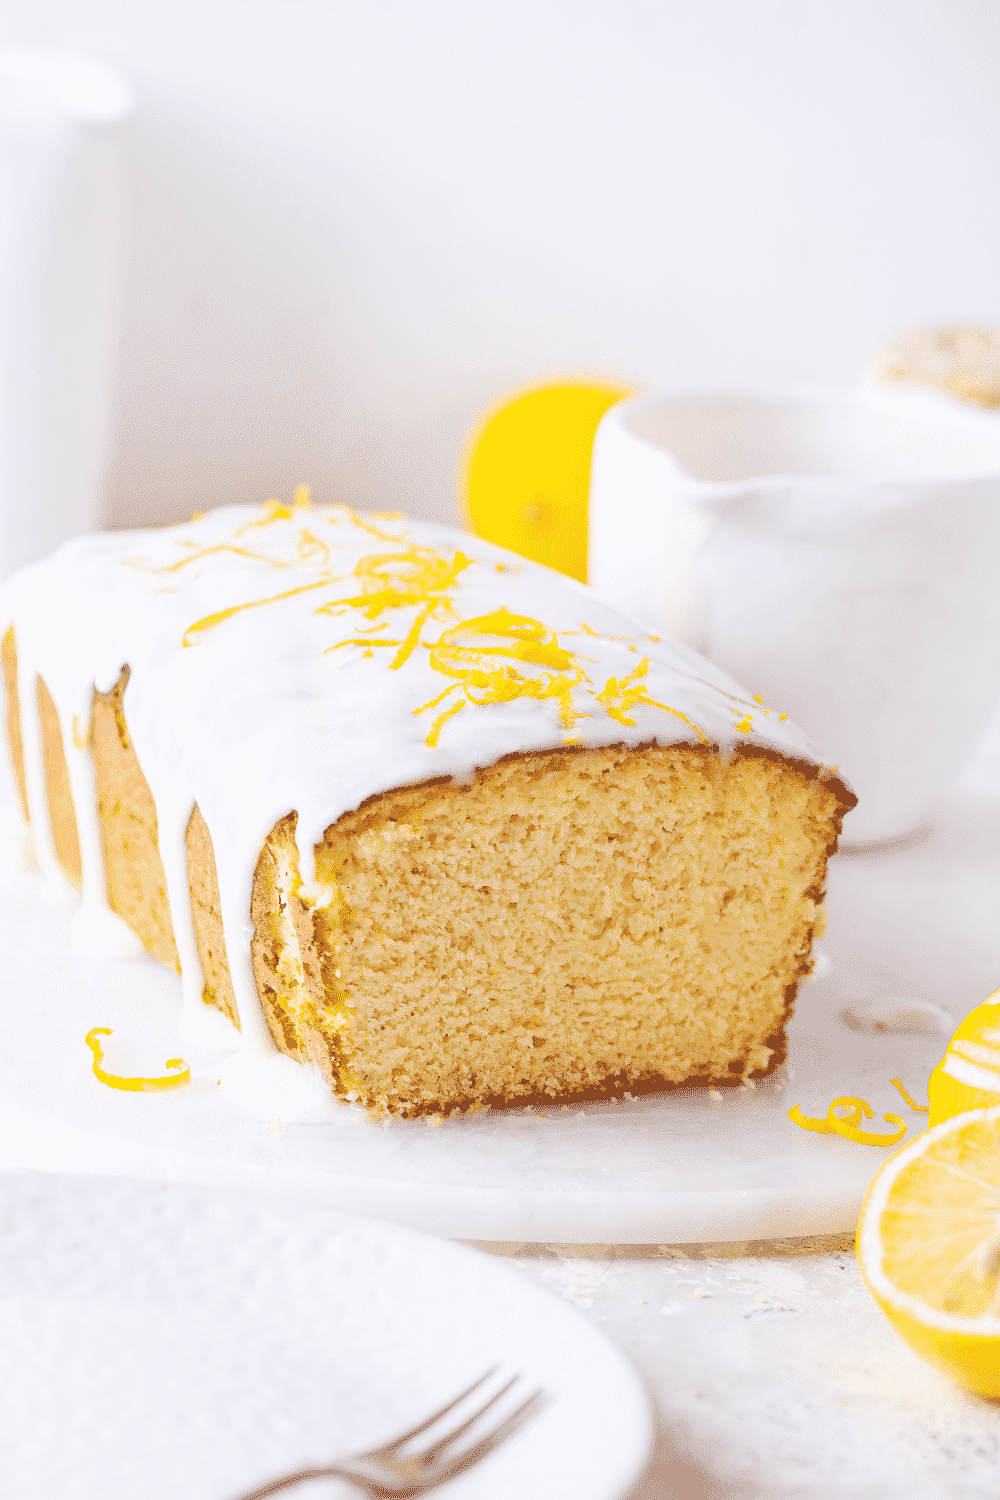 A keto lemon pound cake loaf on a white saucer. Keto glaze is dripping down the side of the keto cake. A slice is taken out of the front of the cake with the inside showing.